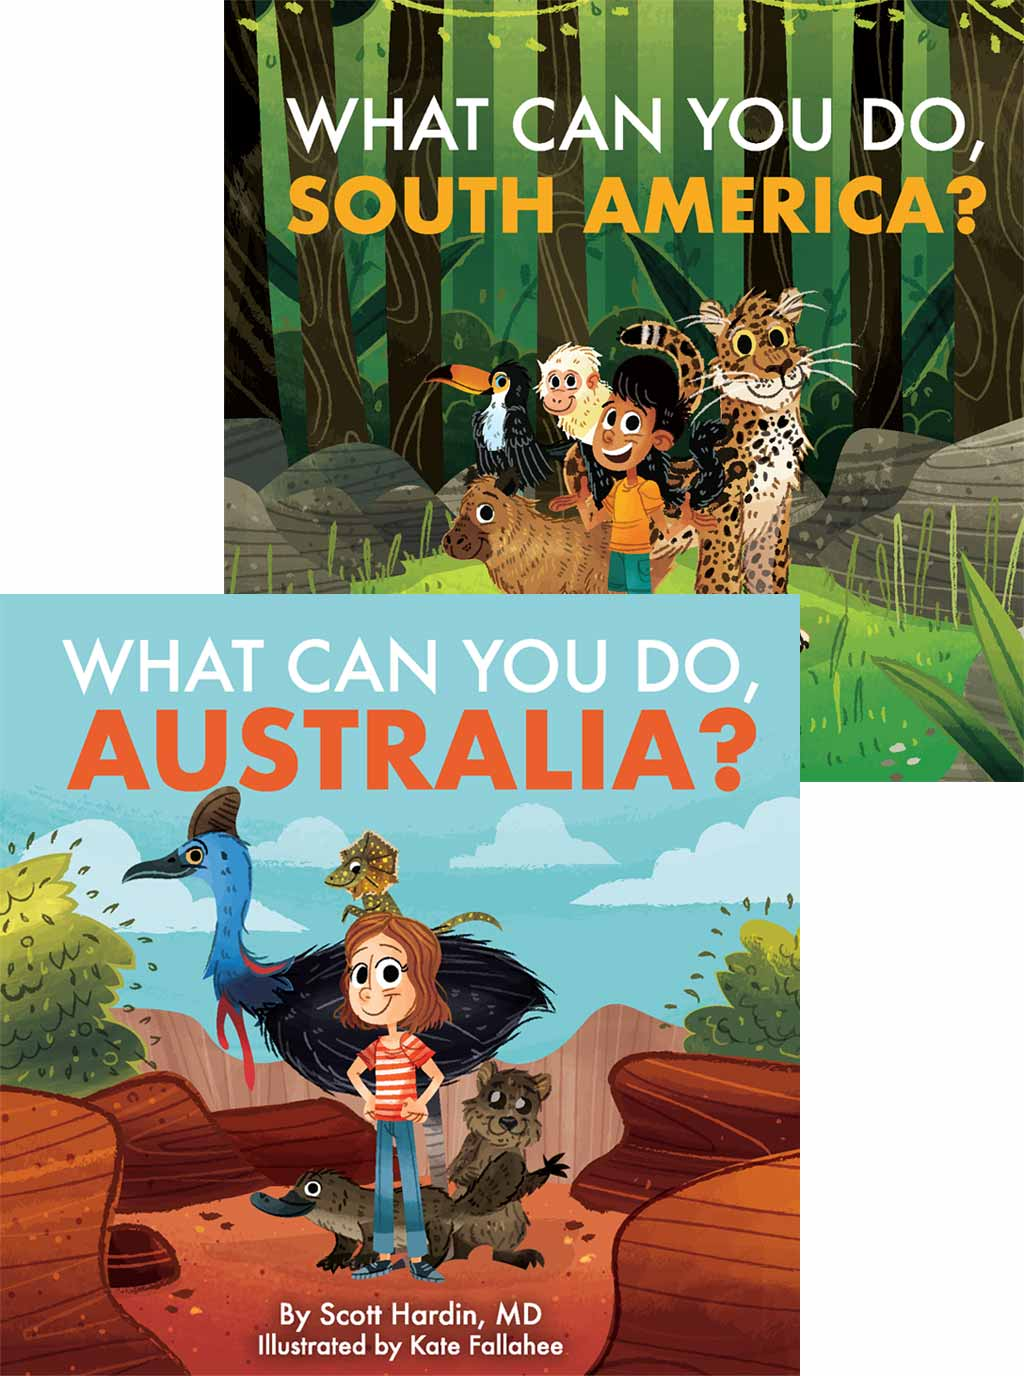 What Can You Do Australia and South America creation science for kids book covers